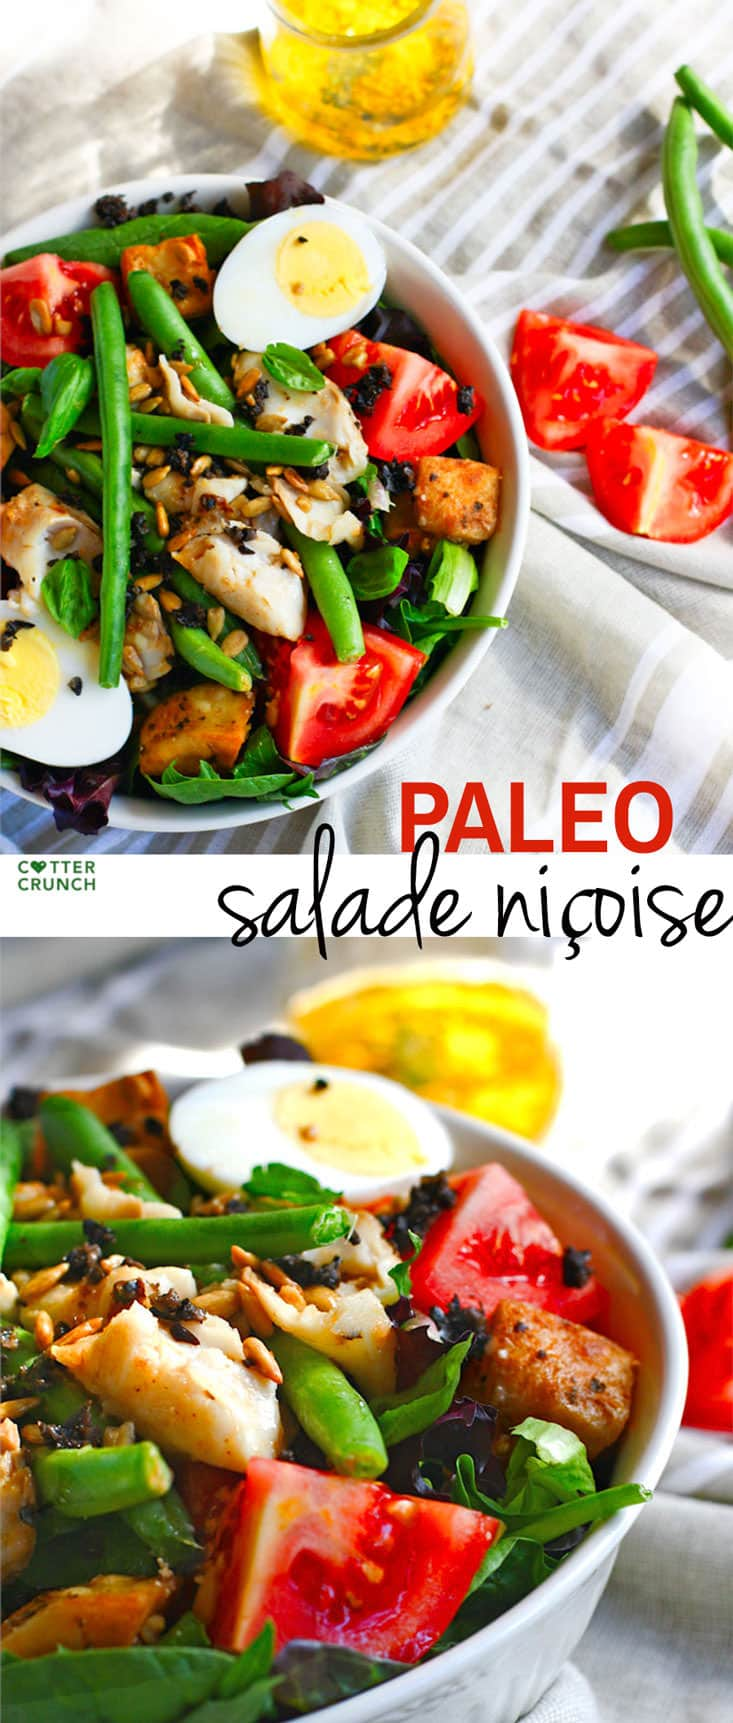 Paleo Salade Niçoise + 2 Cooking Oils To Boost Nutrients